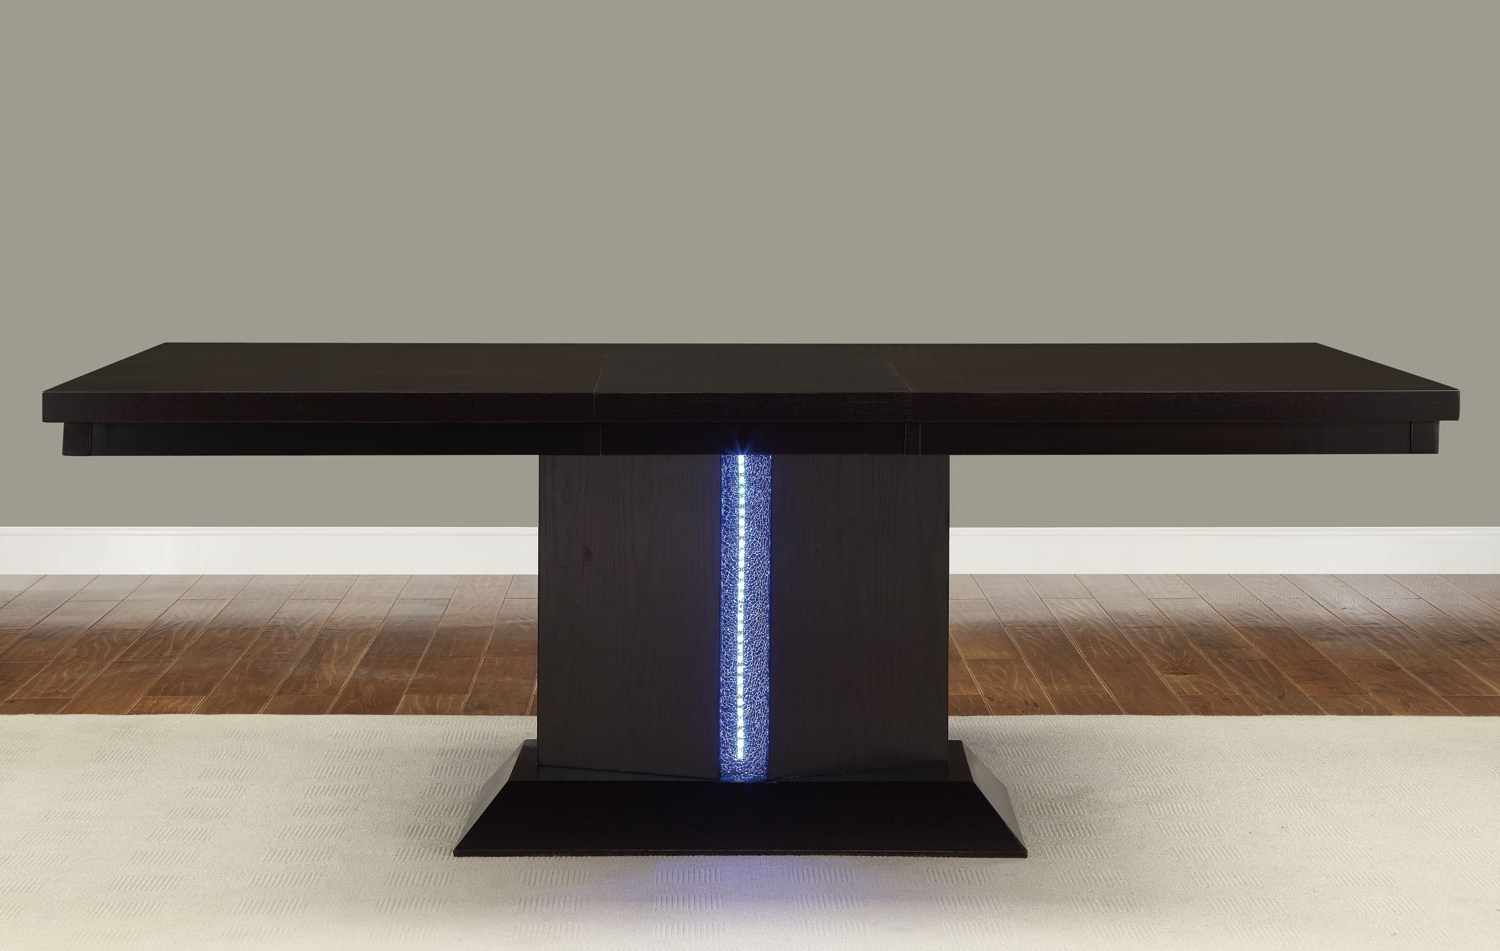 Led Dining Tables Lights Regarding Popular Homelegance Pulse Dining Table With Led Light – Espresso? 2579  (View 3 of 25)